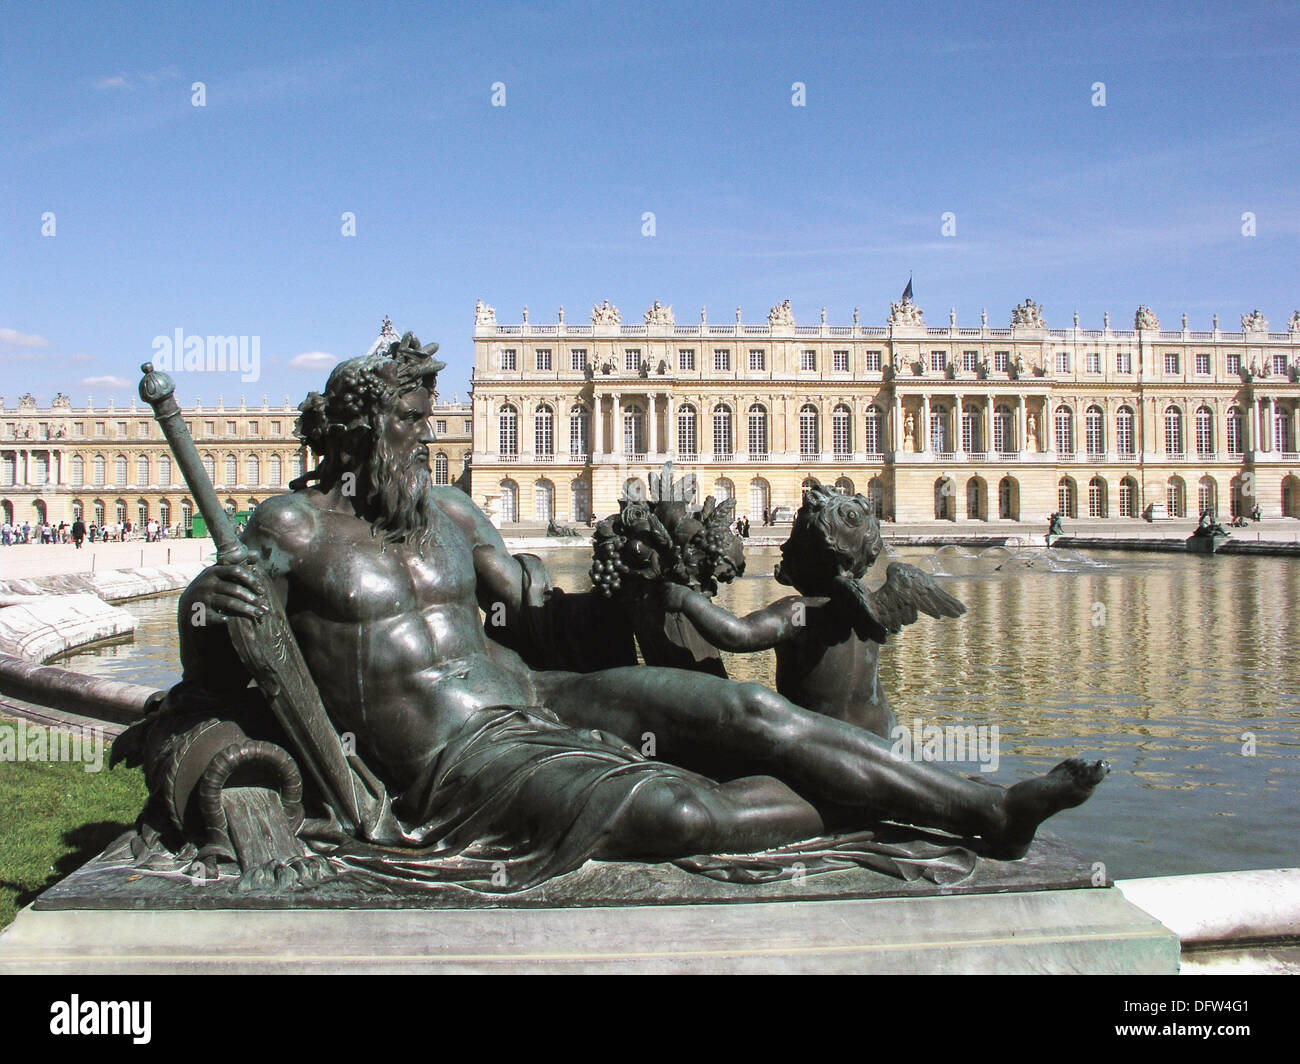 Versailles, France: A statue of Poseidon sits next to a reflecting pool near the Palace de Versailles. - Stock Image